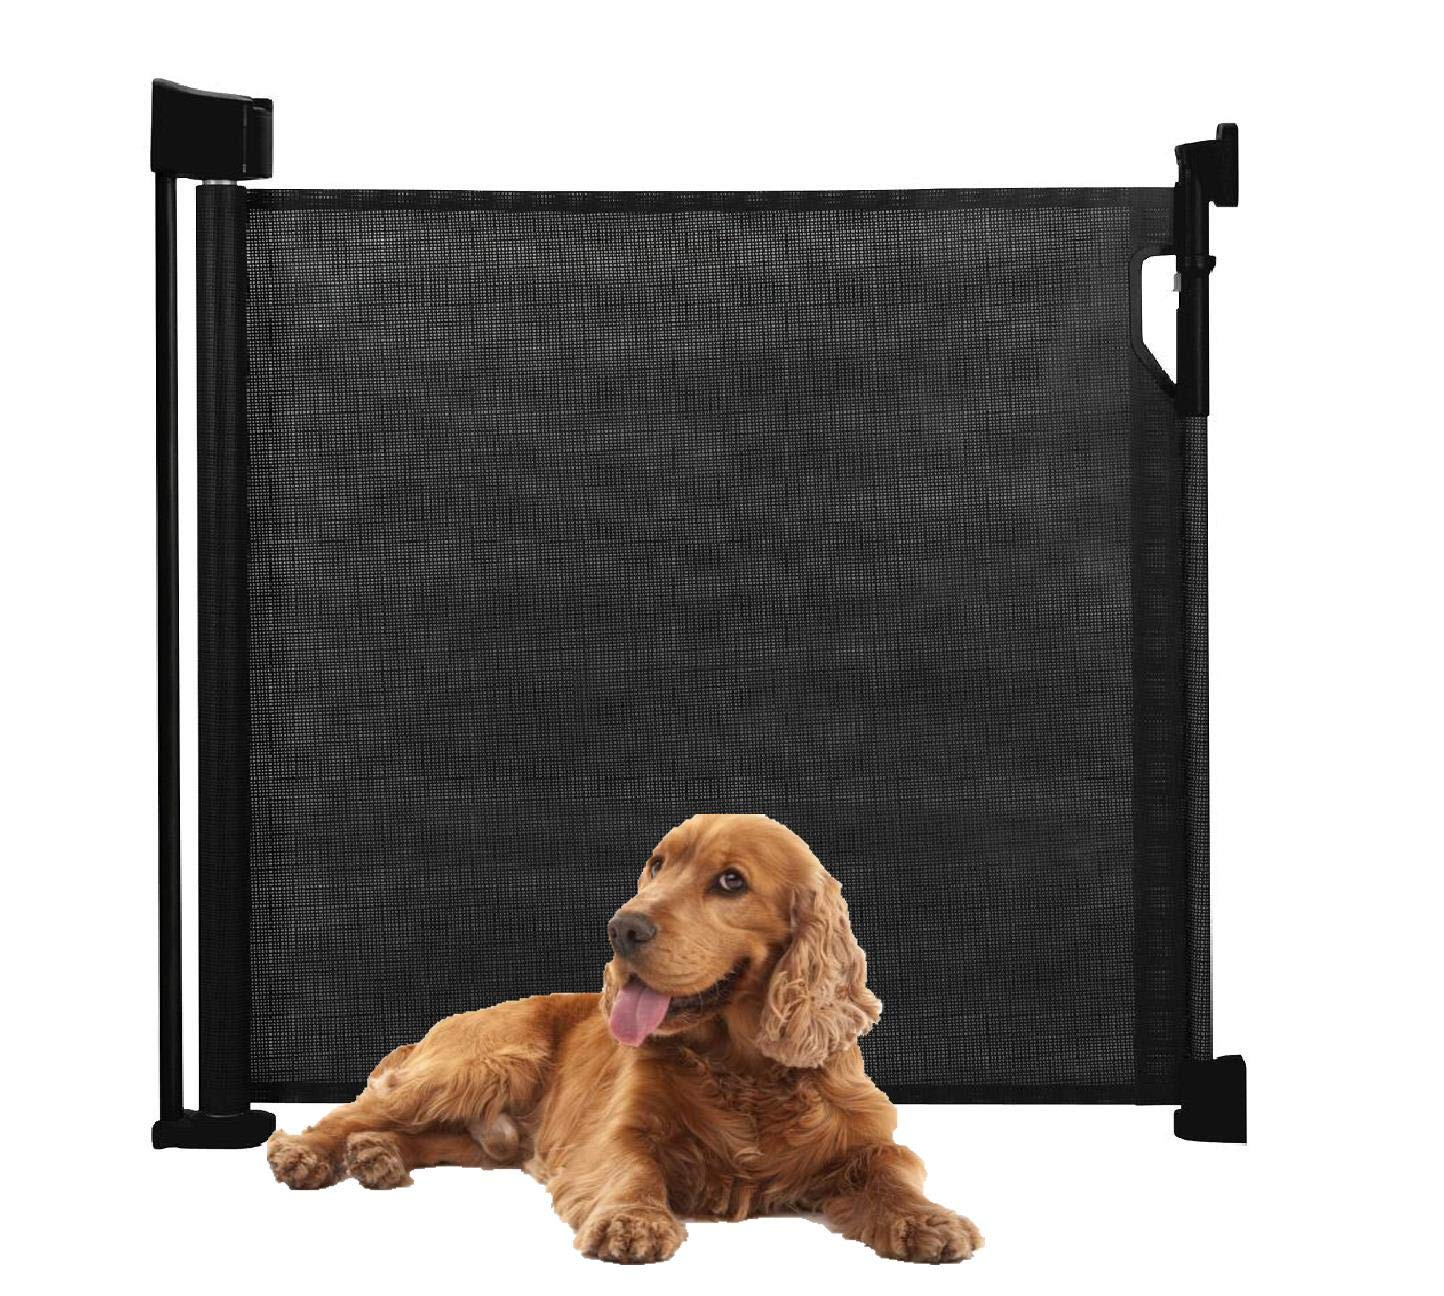 Bettacare Advanced Retractable Pet Gate (60cm - 140cm, Black) Bettacare comes in two sizes 90cm tall and upto 120cm wide, or 95cm tall and upto 140cm wide Screw fitted mesh barrier with steel frame. Easy to follow installation guide with template for perfect fit One-handed operation. Retractable gate that fully retracts when not in use 1